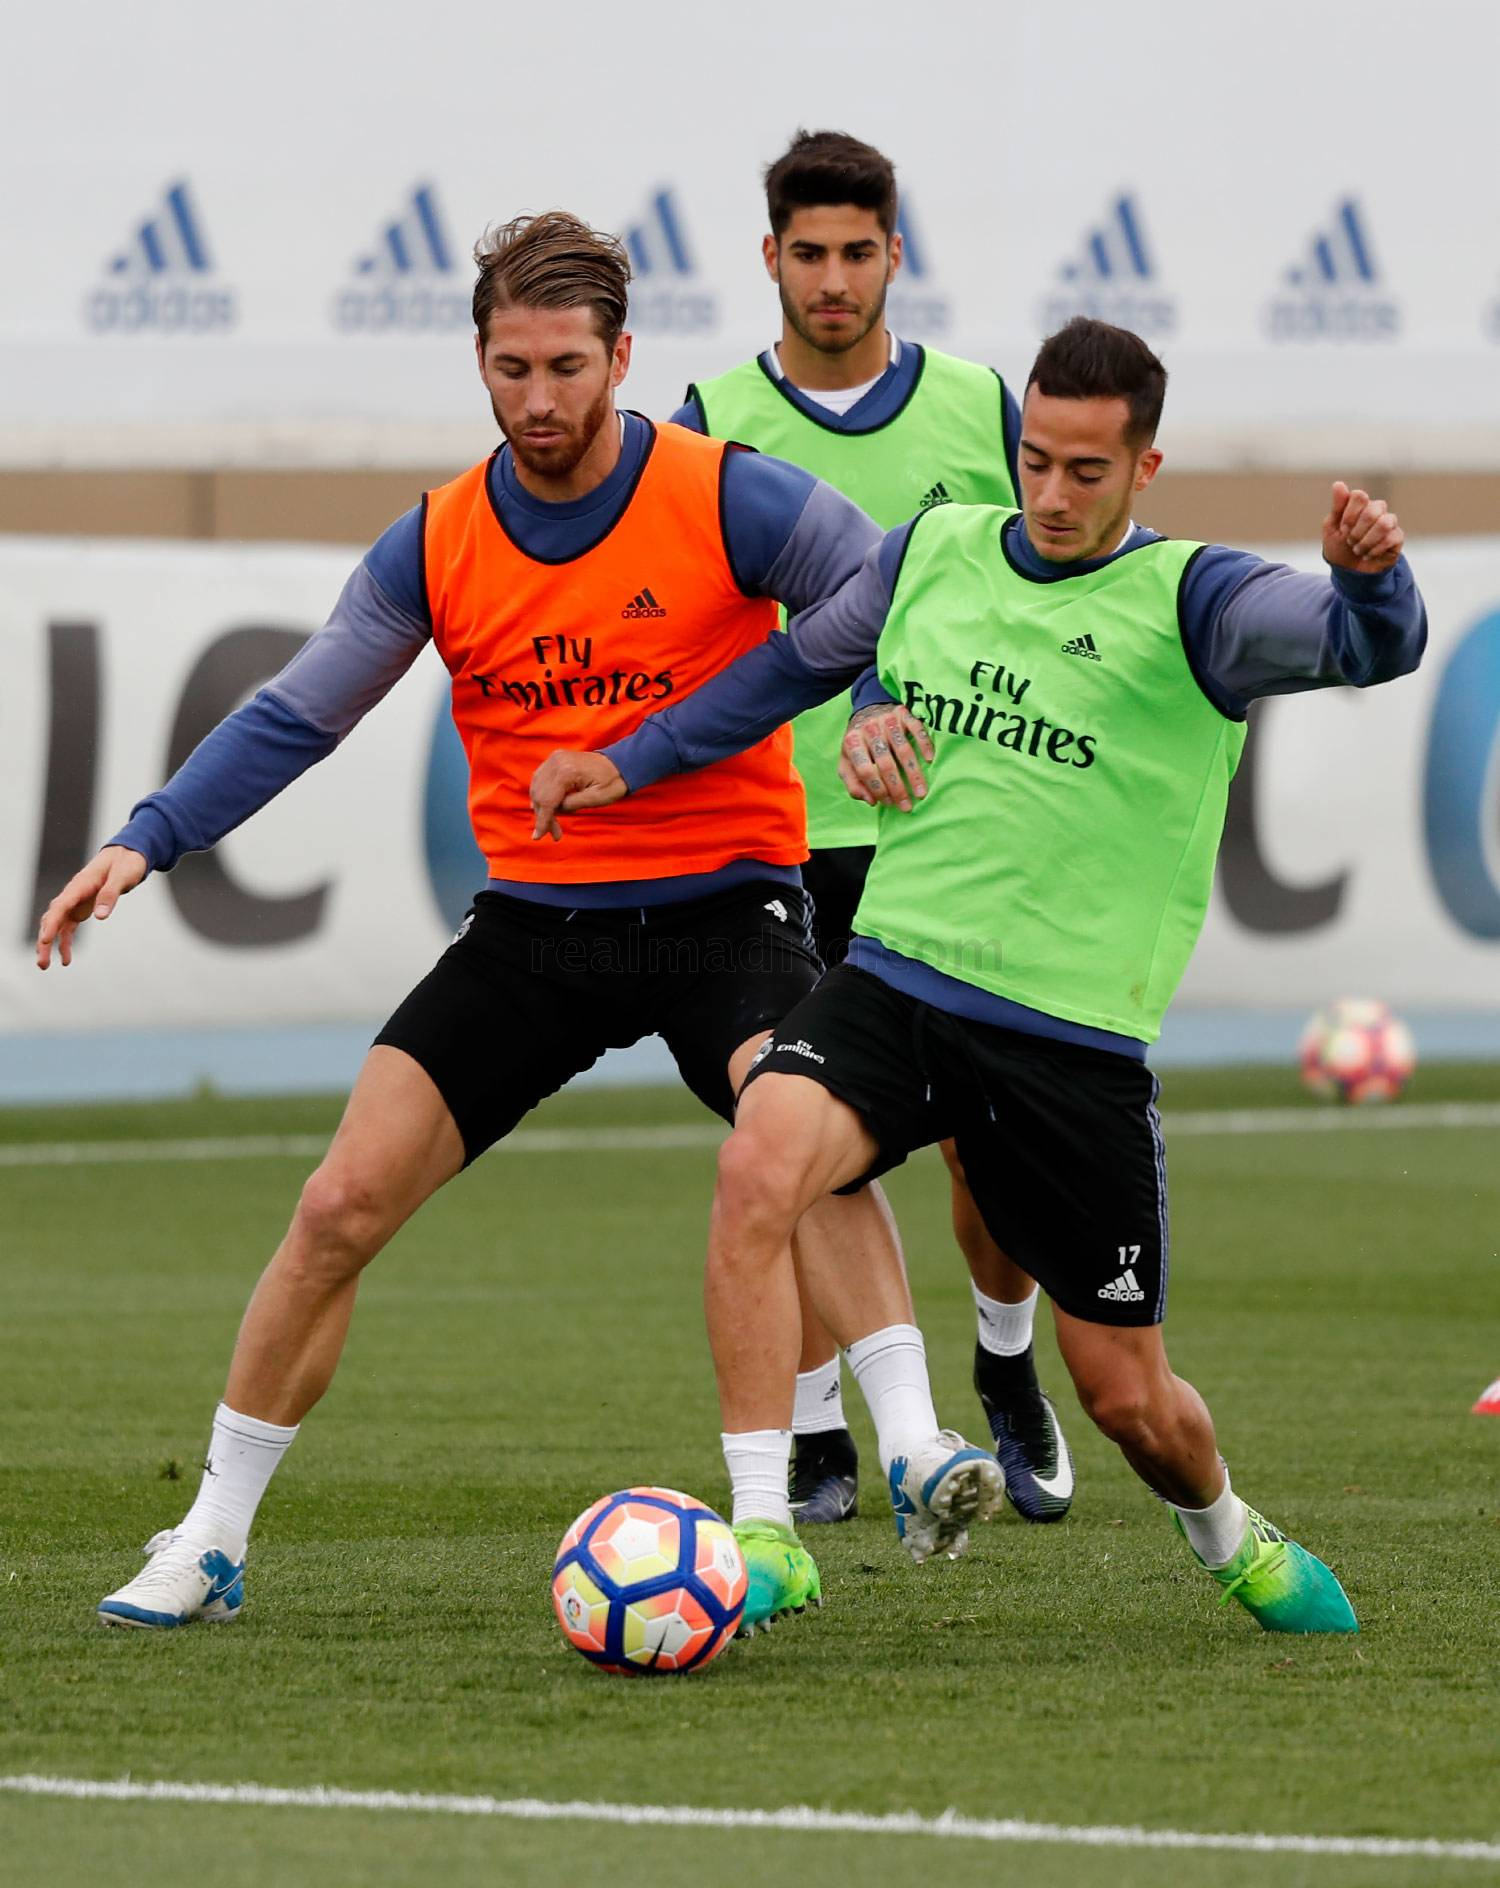 Real Madrid - Entrenamiento del Real Madrid - 12-05-2017